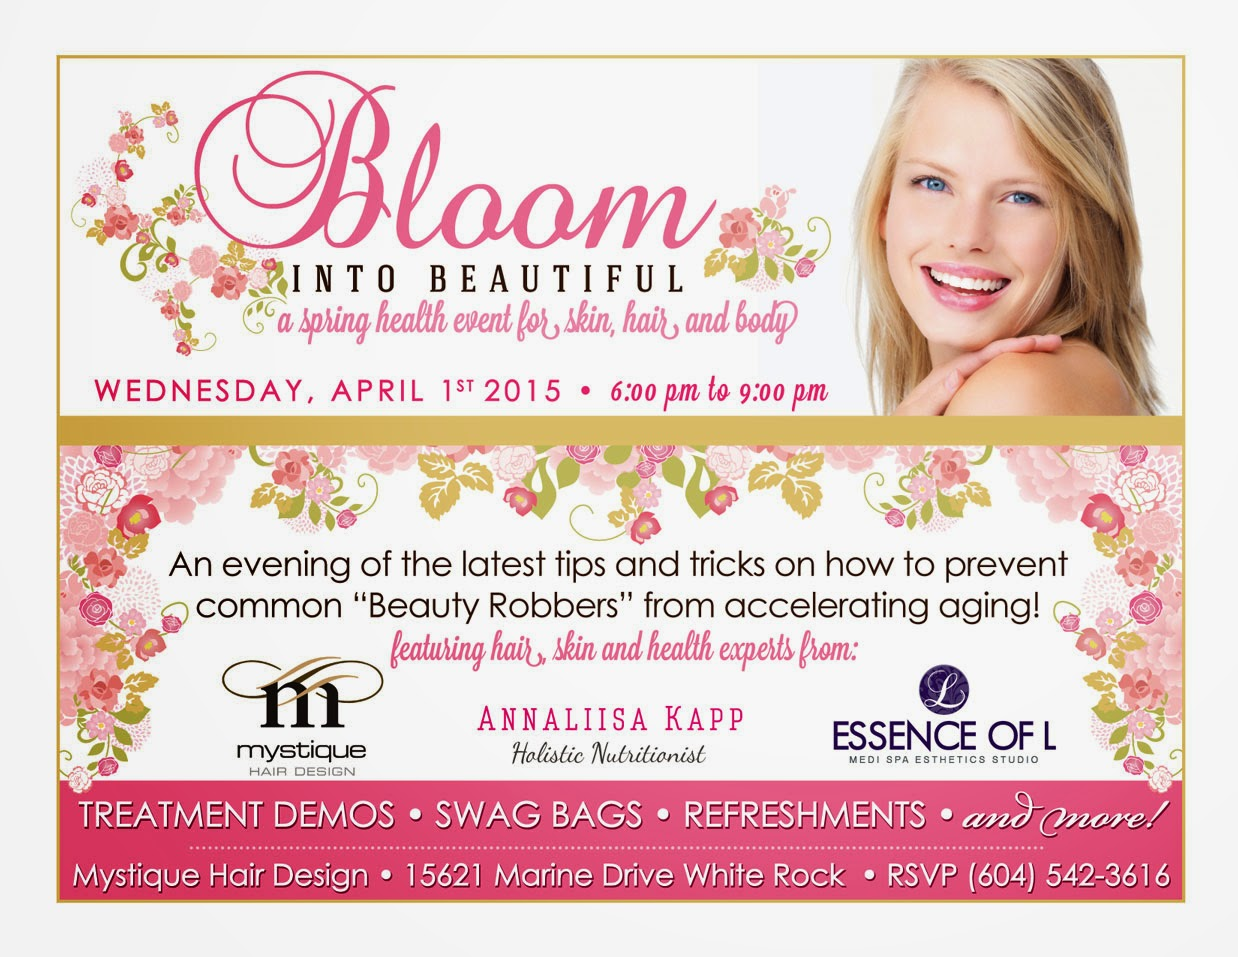 Bloom into Beautiful Event in White Rock for nutrition, skin and hair